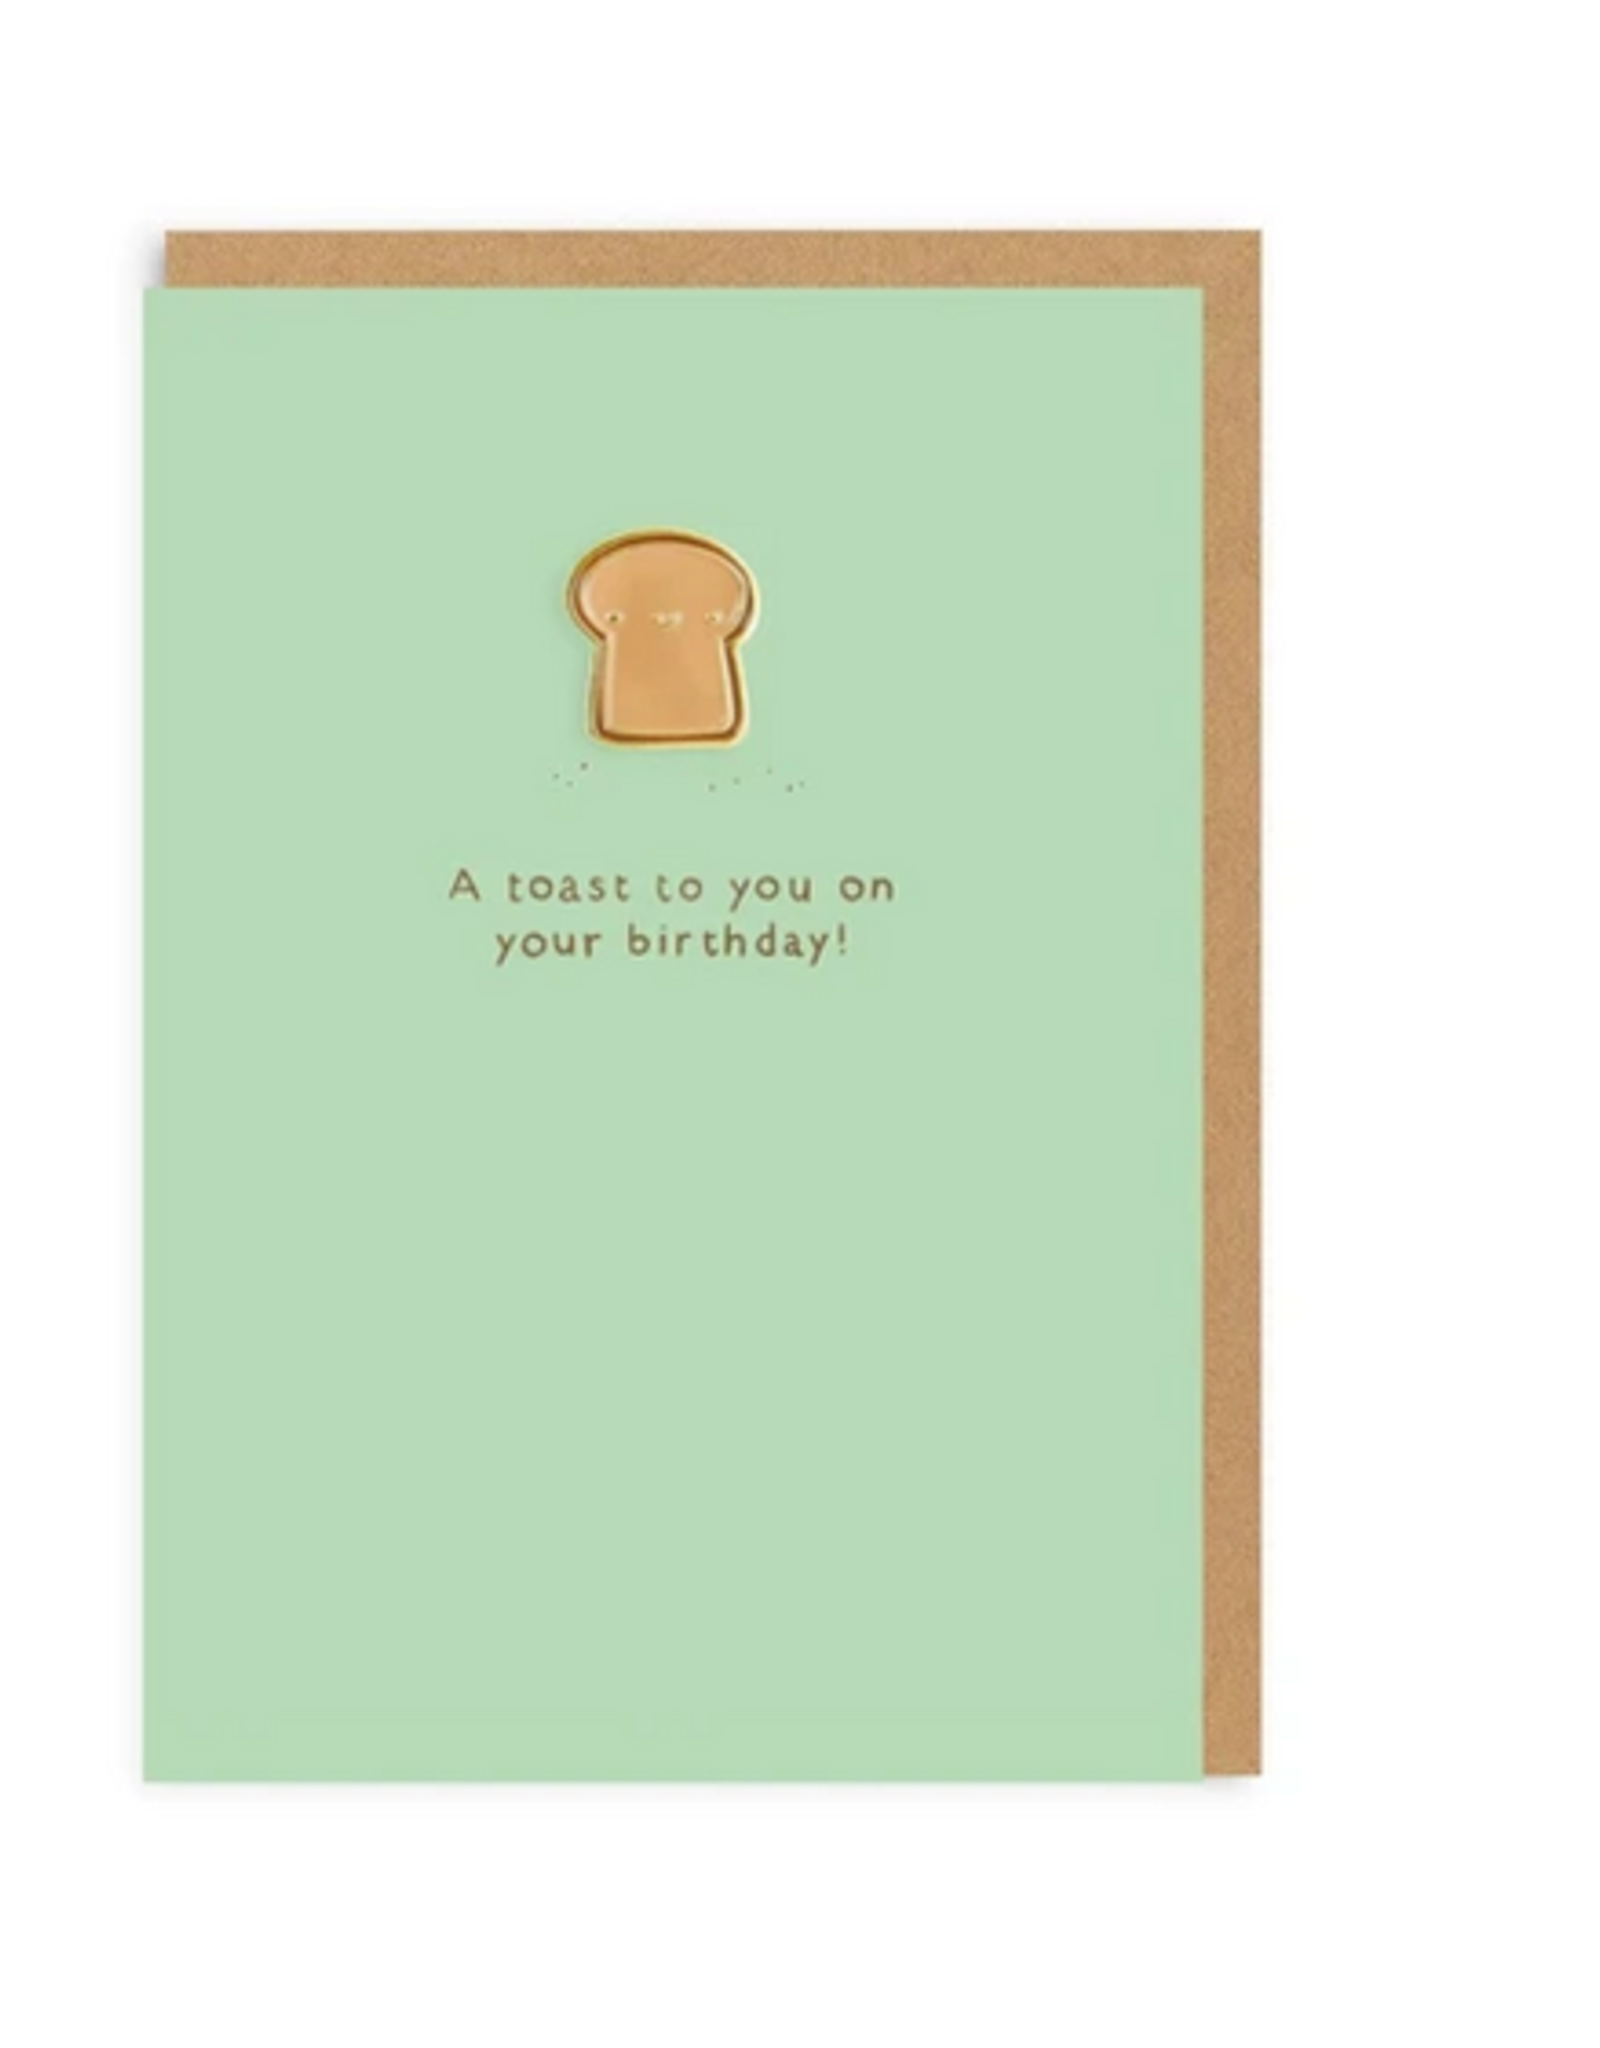 Ohh deer Card A toast to you on your birthday!